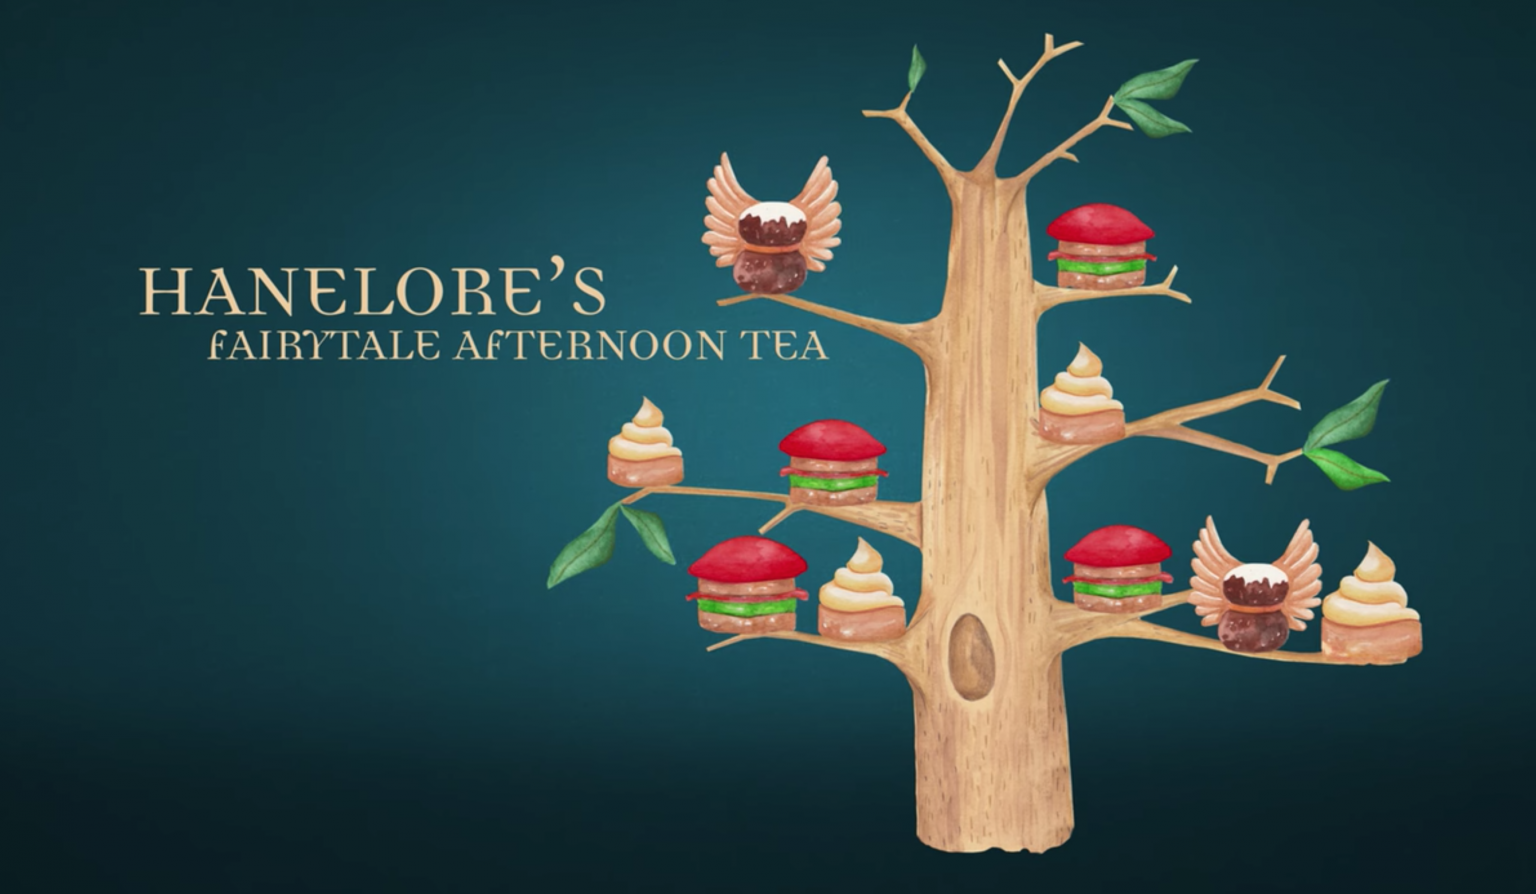 Illustration of tree with sandwiches and desserts on branches